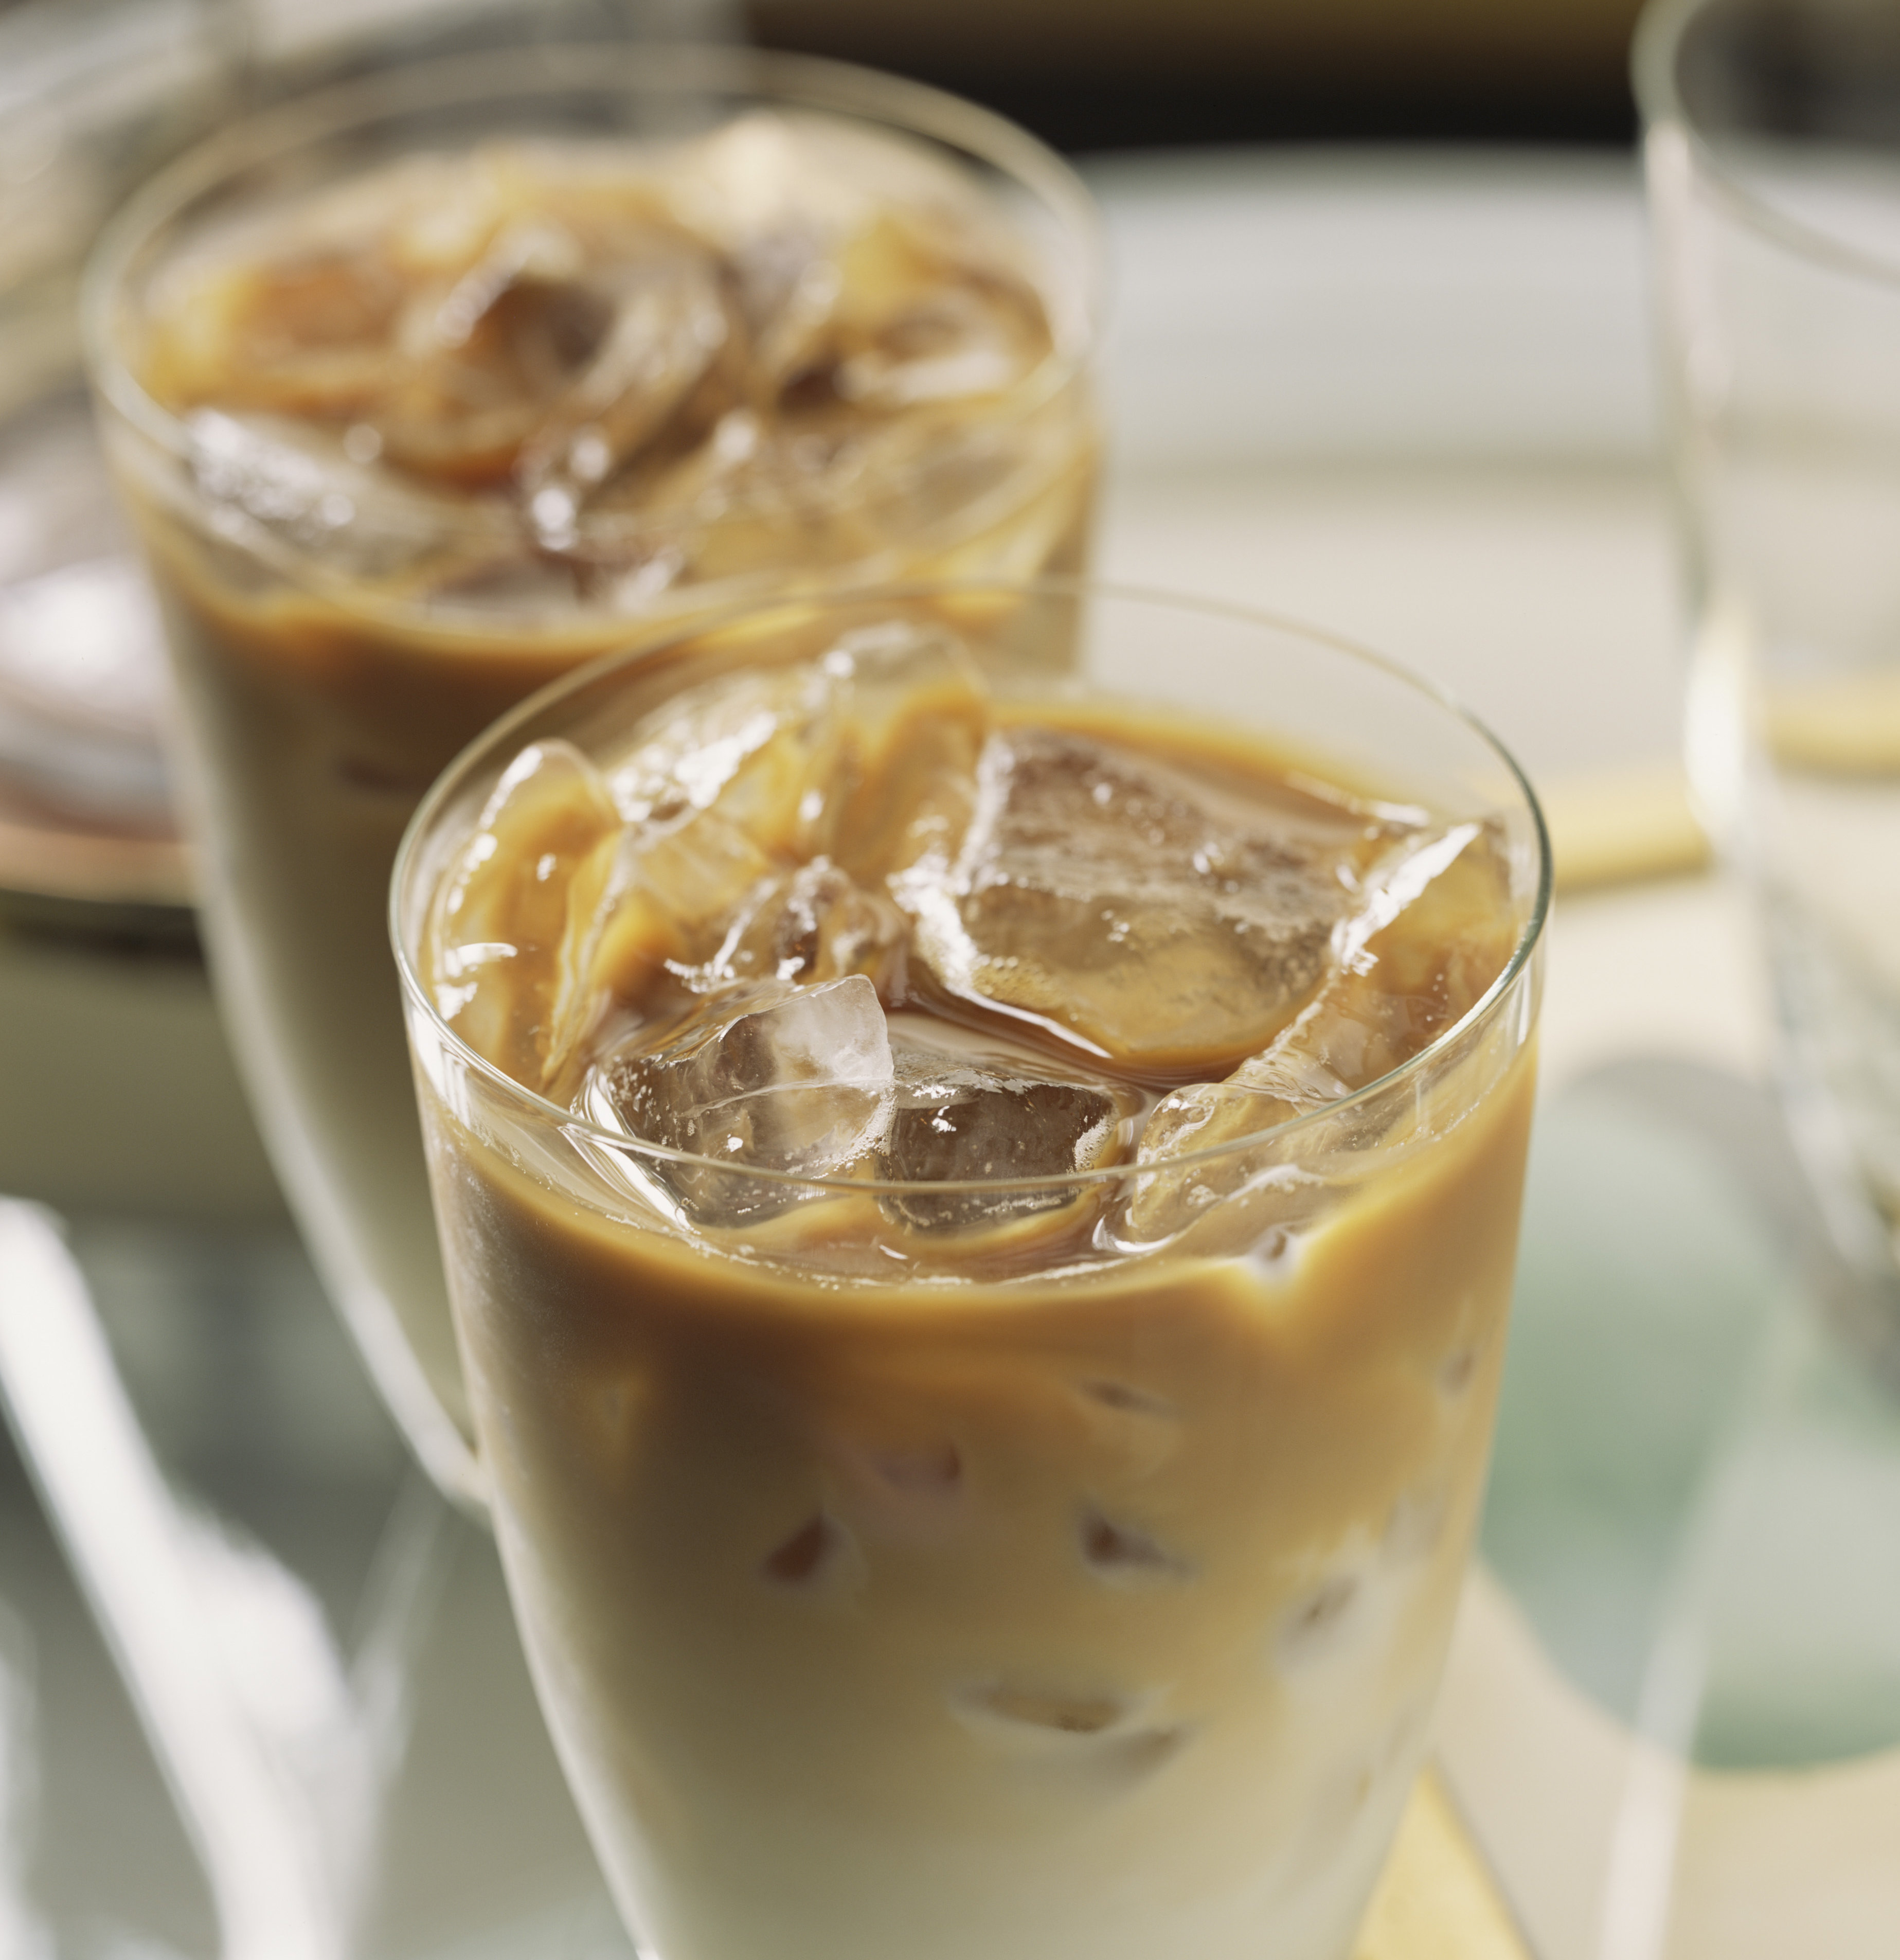 Iced Coffee Season Is Finally Here—Here's How to Make Your Own